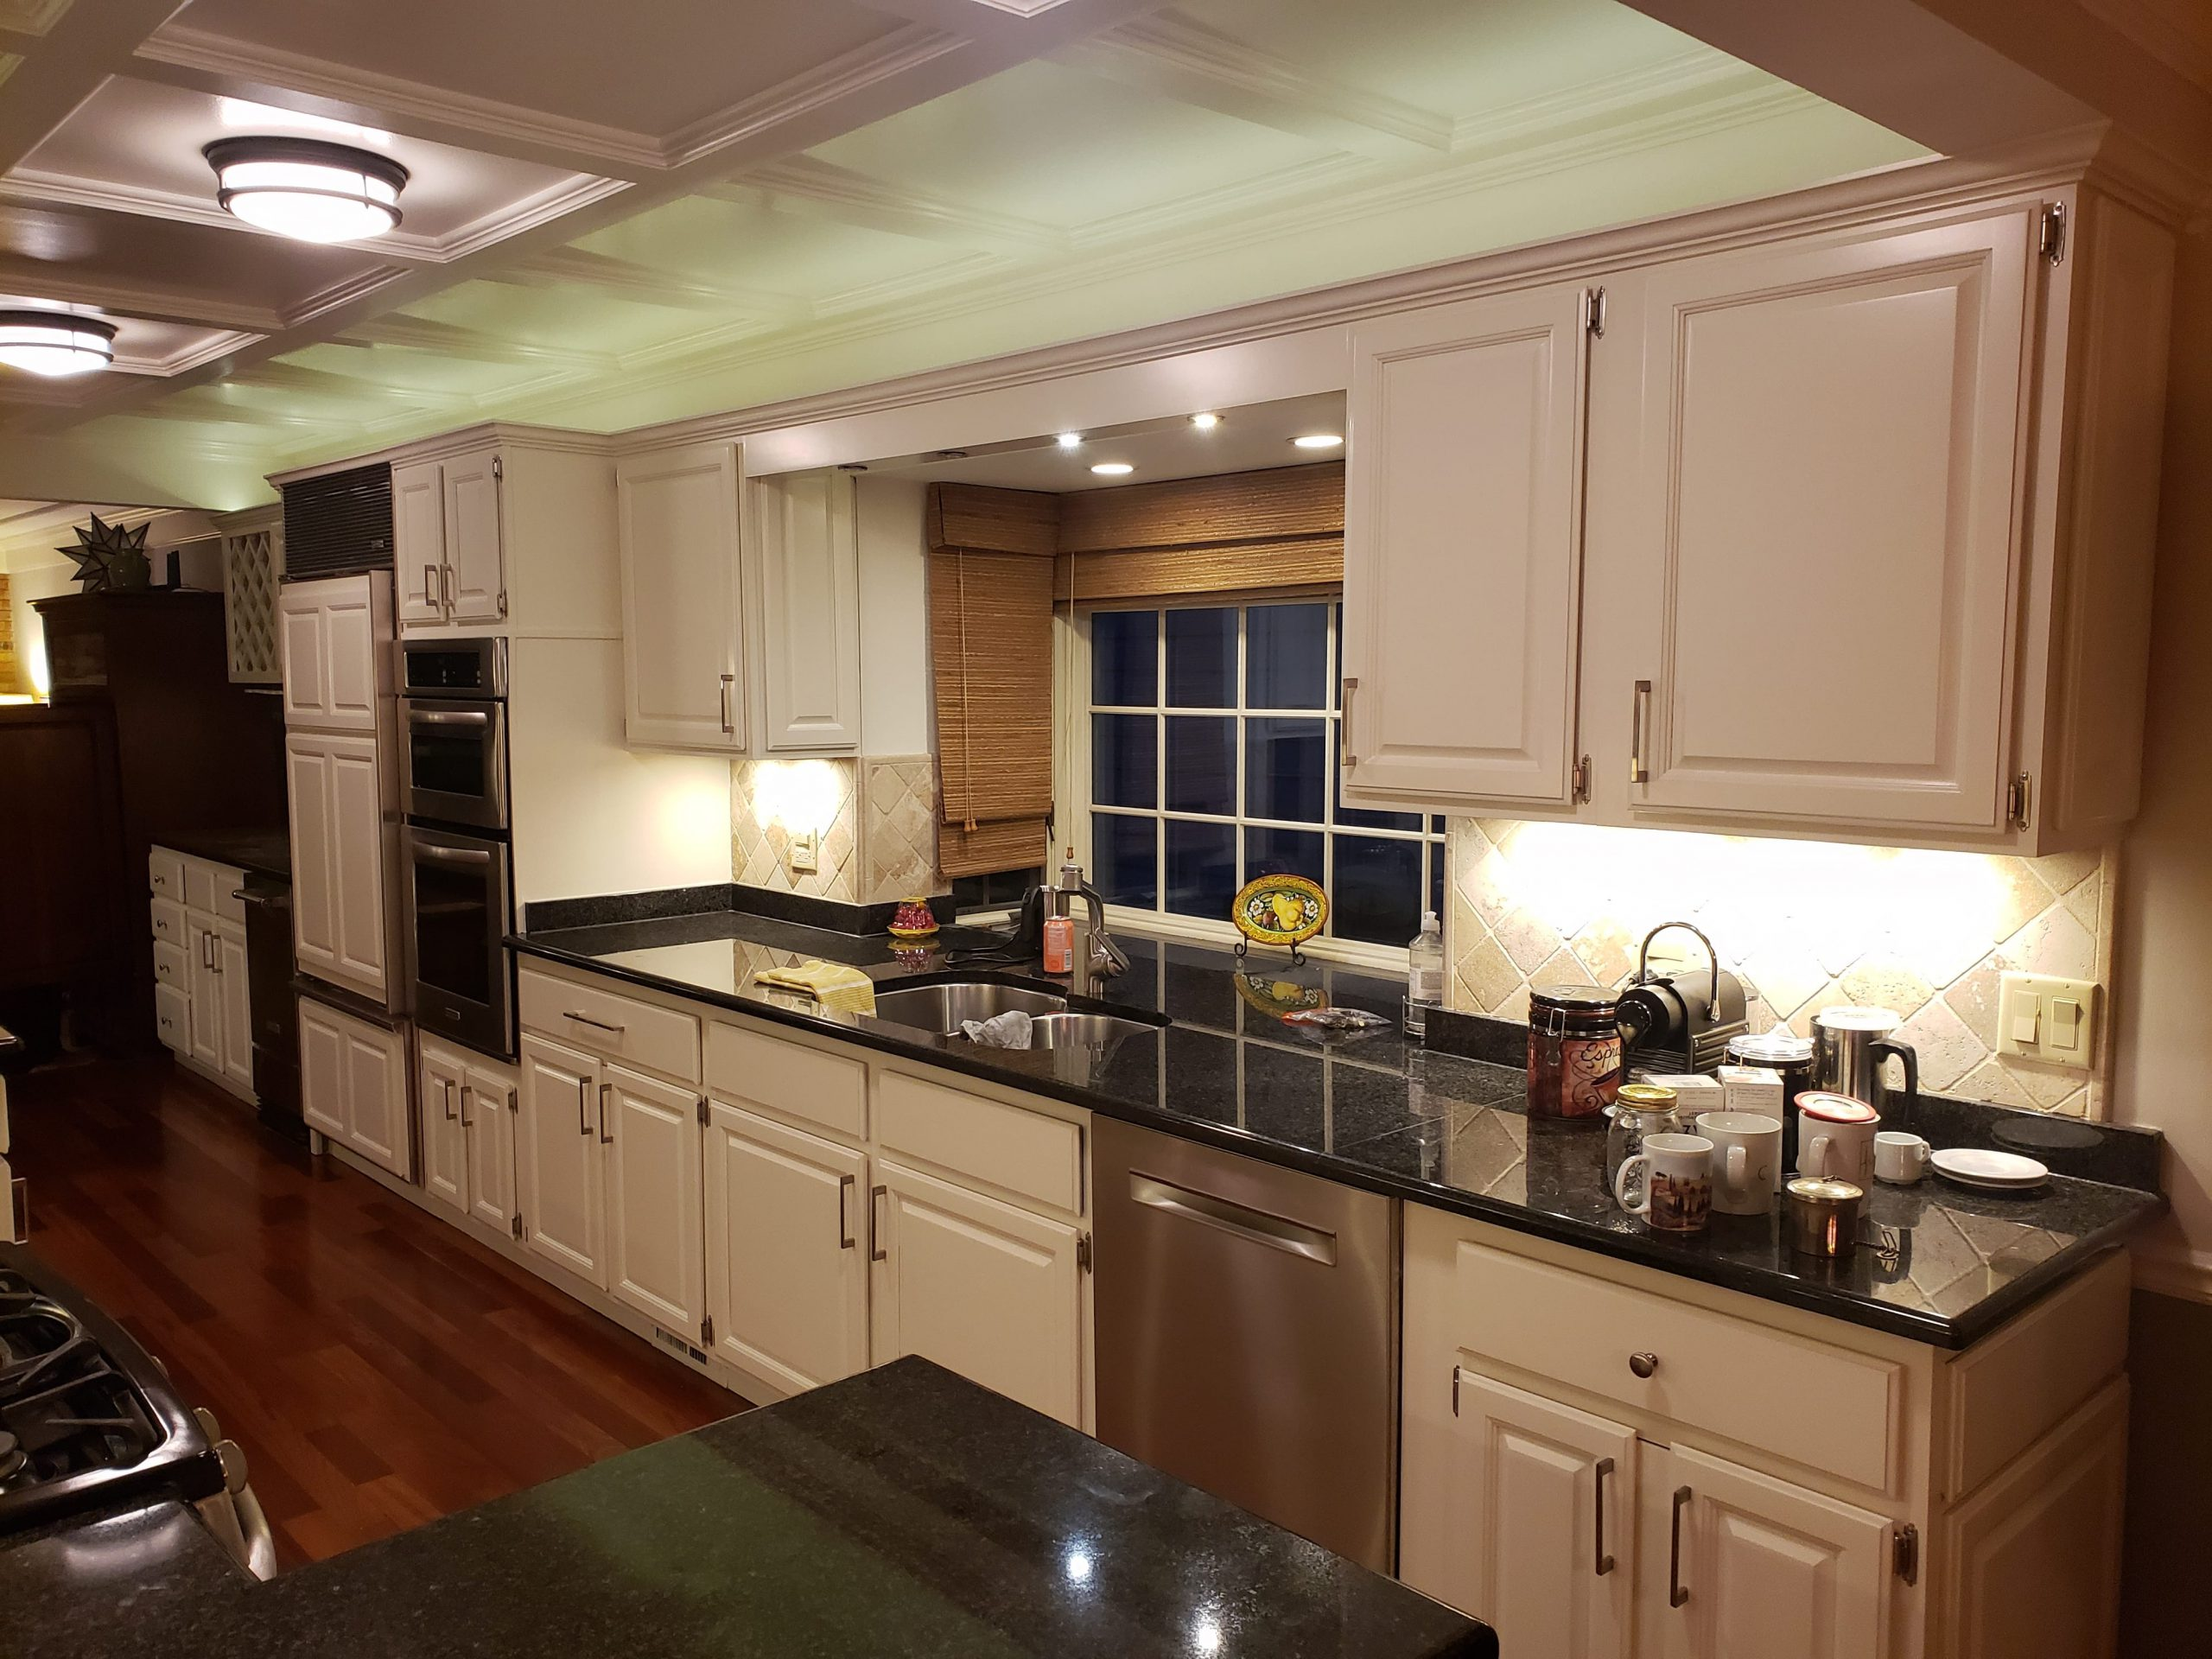 interior-painters-northbrook-painting-services-northbrook